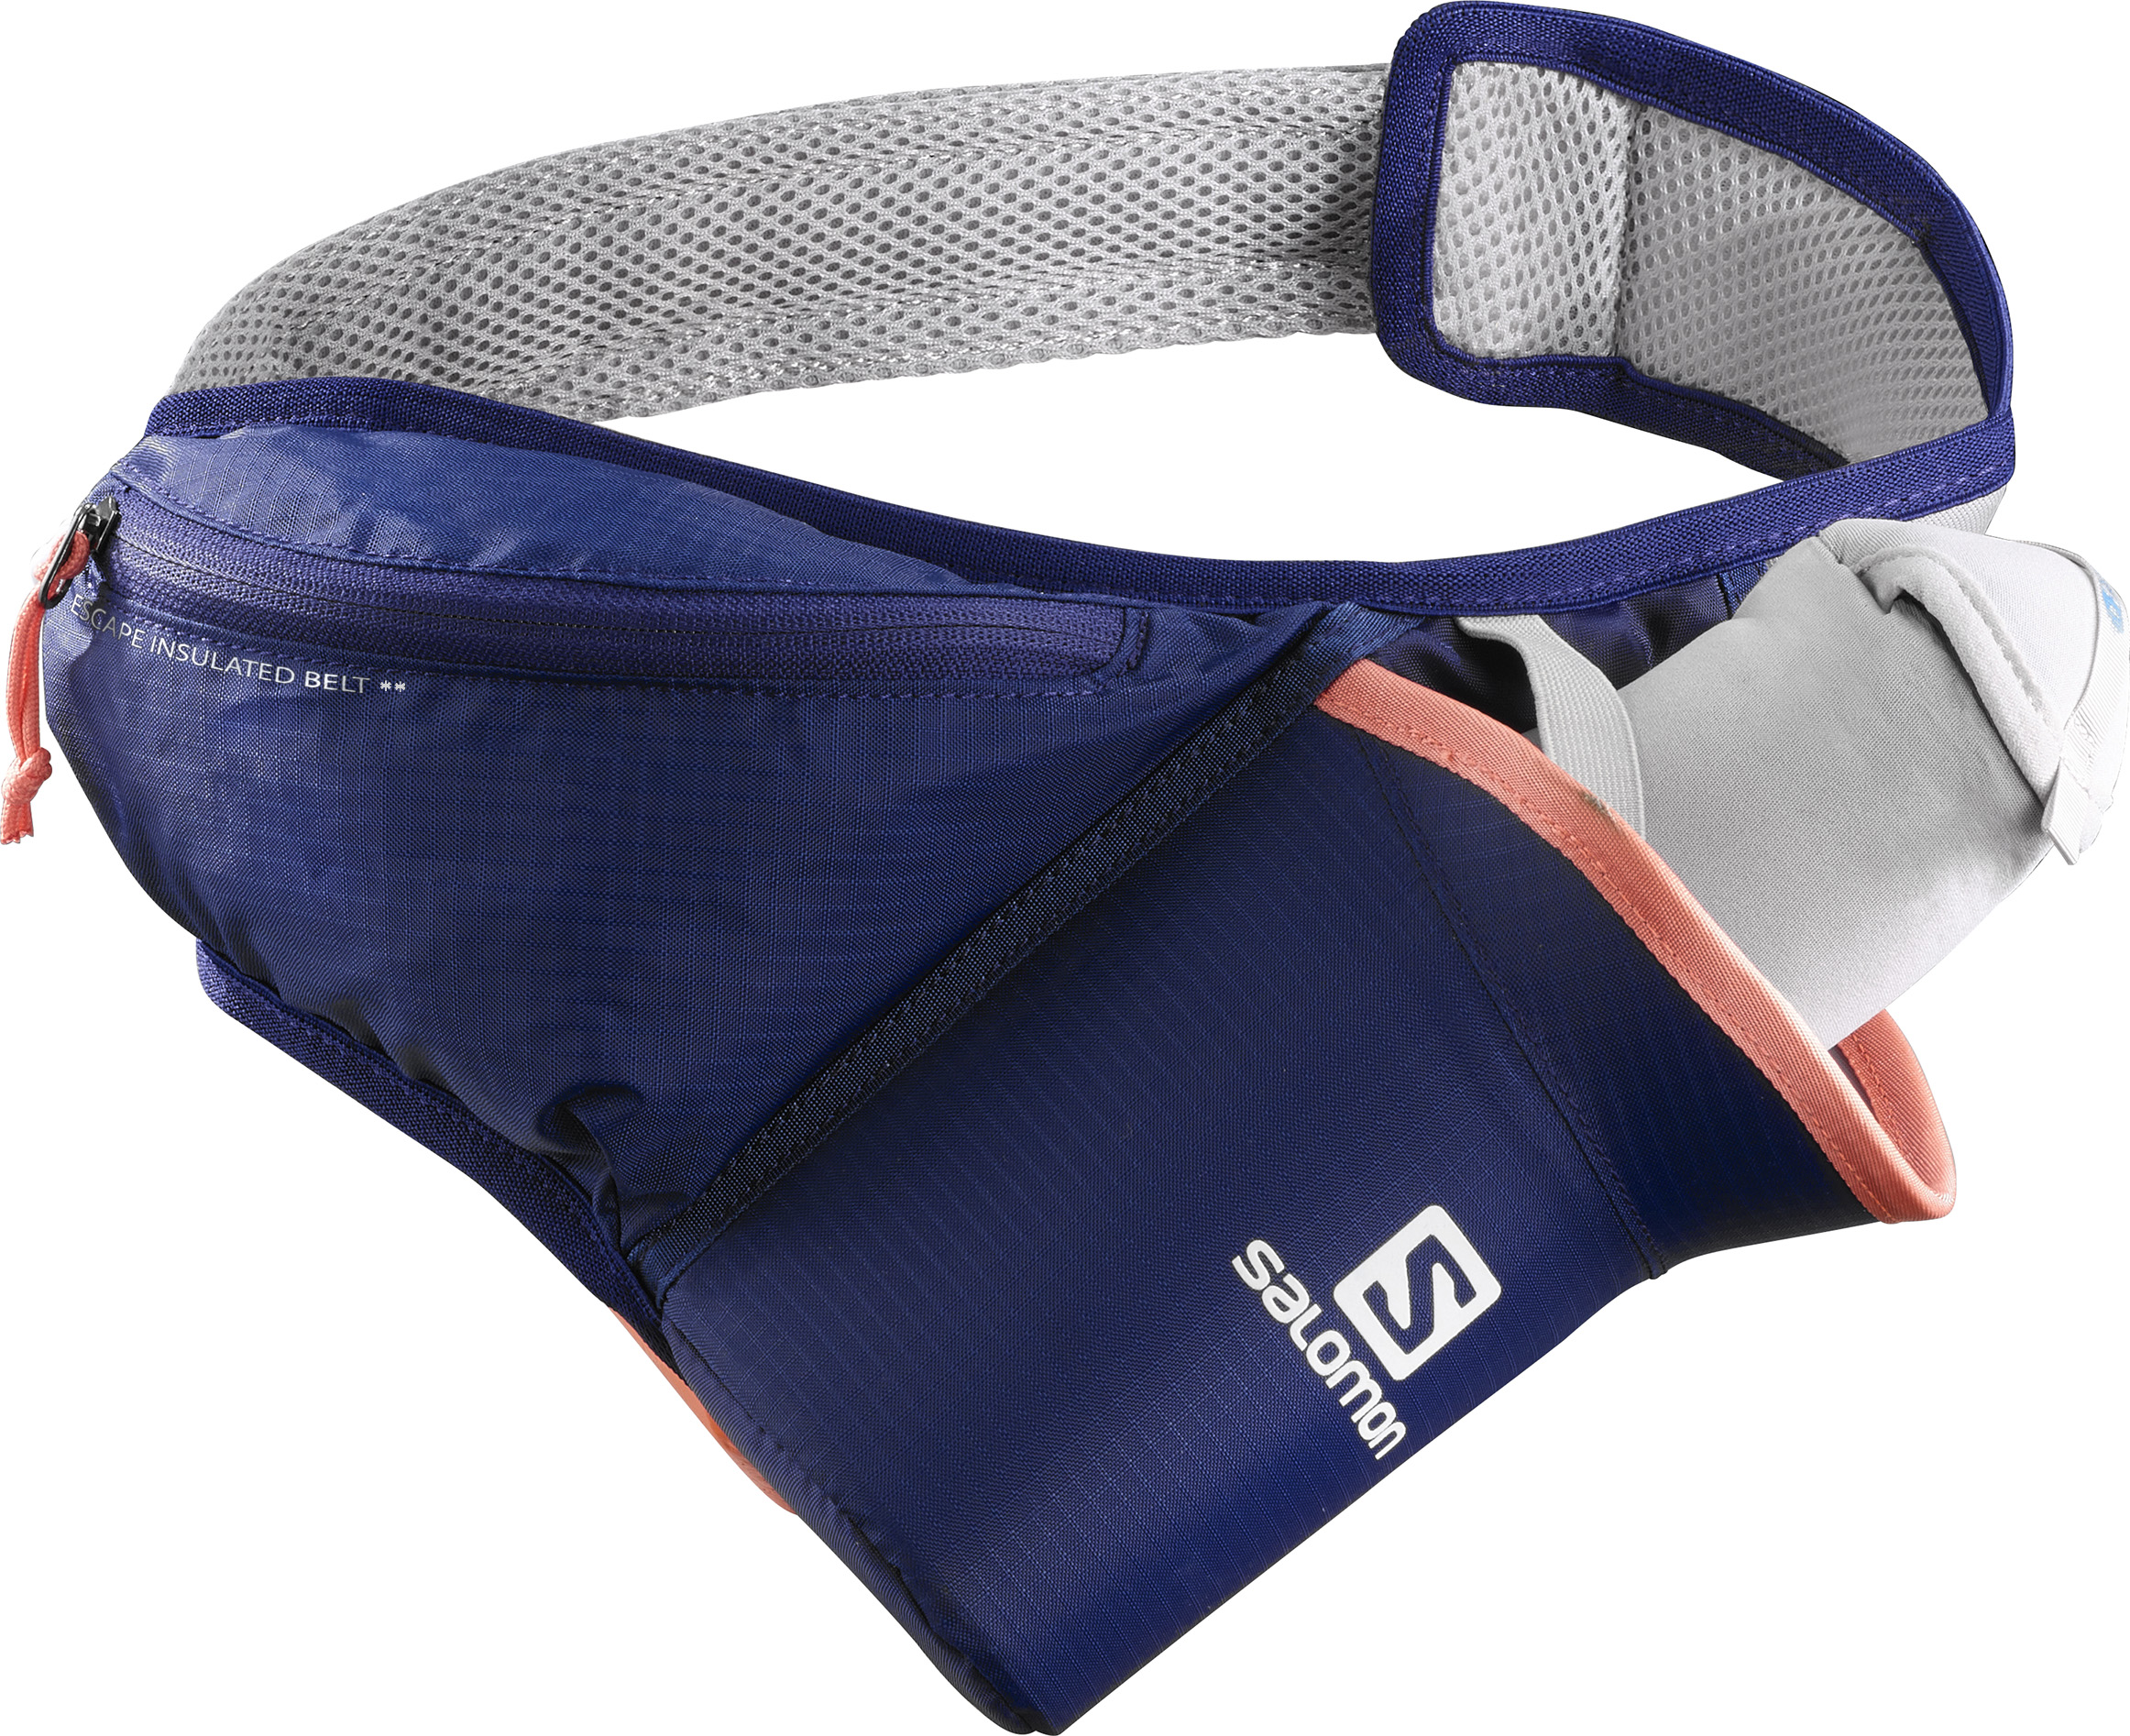 SALOMON ESCAPE INSULATED BELT Medieval B/Fusion